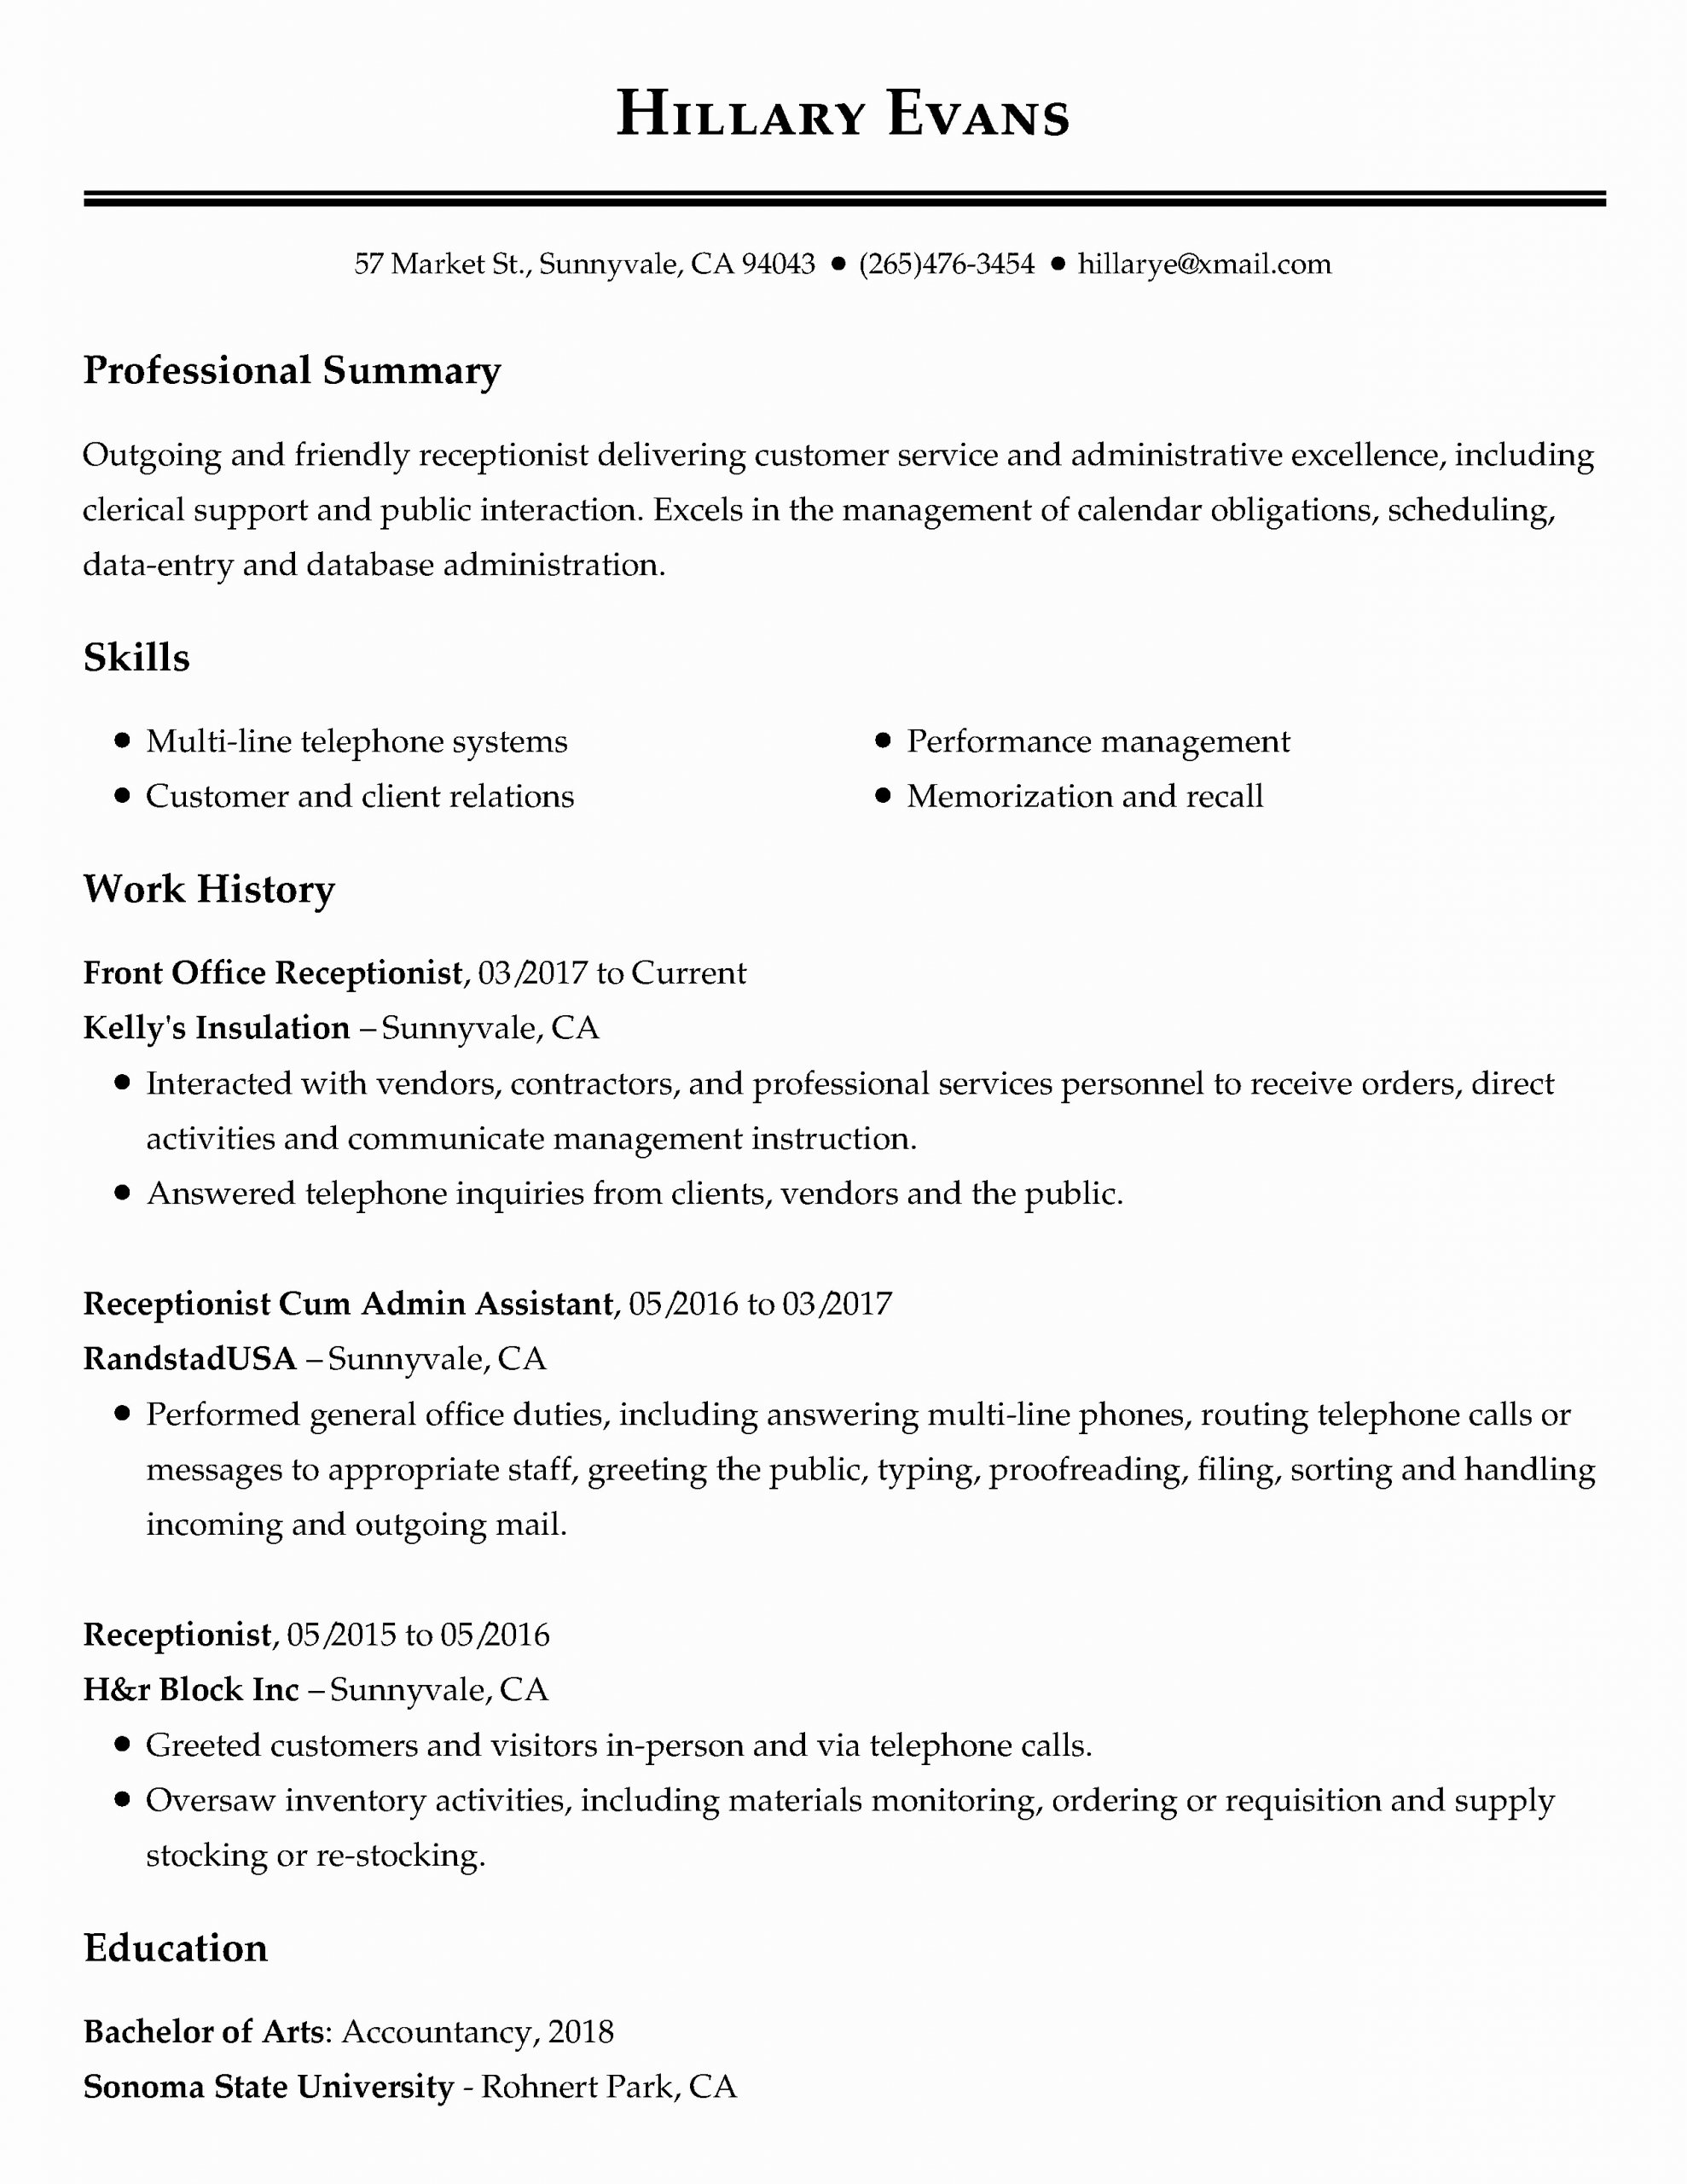 Front Desk Resume Examples Elegant View 30 Samples Of Resumes By Industry Experience Lev Job Resume Samples Resume Objective Examples Resume Writing Examples